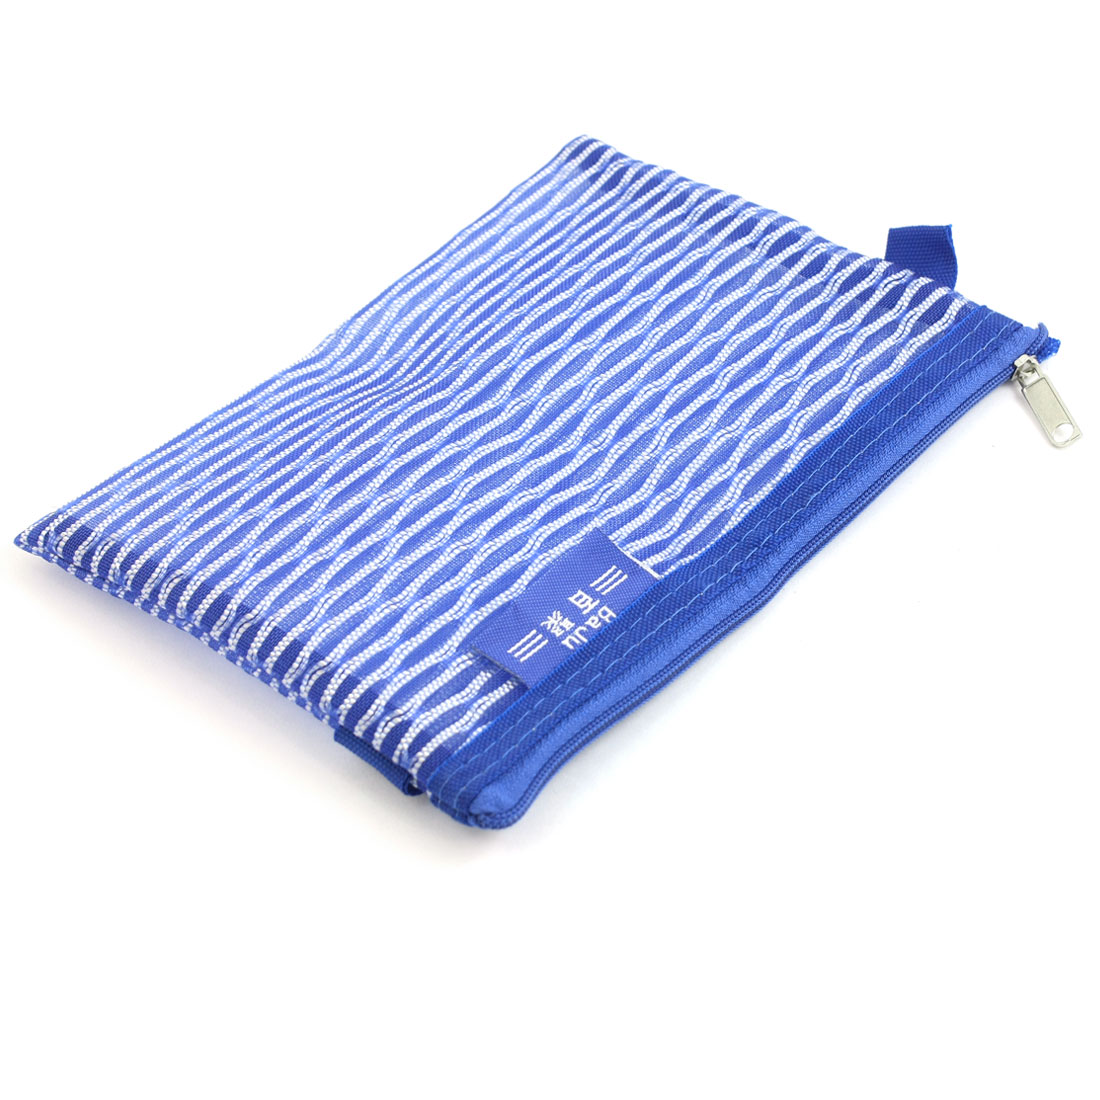 Mesh Design Zipper Closure File Bag Office Document Holder Organizer Blue